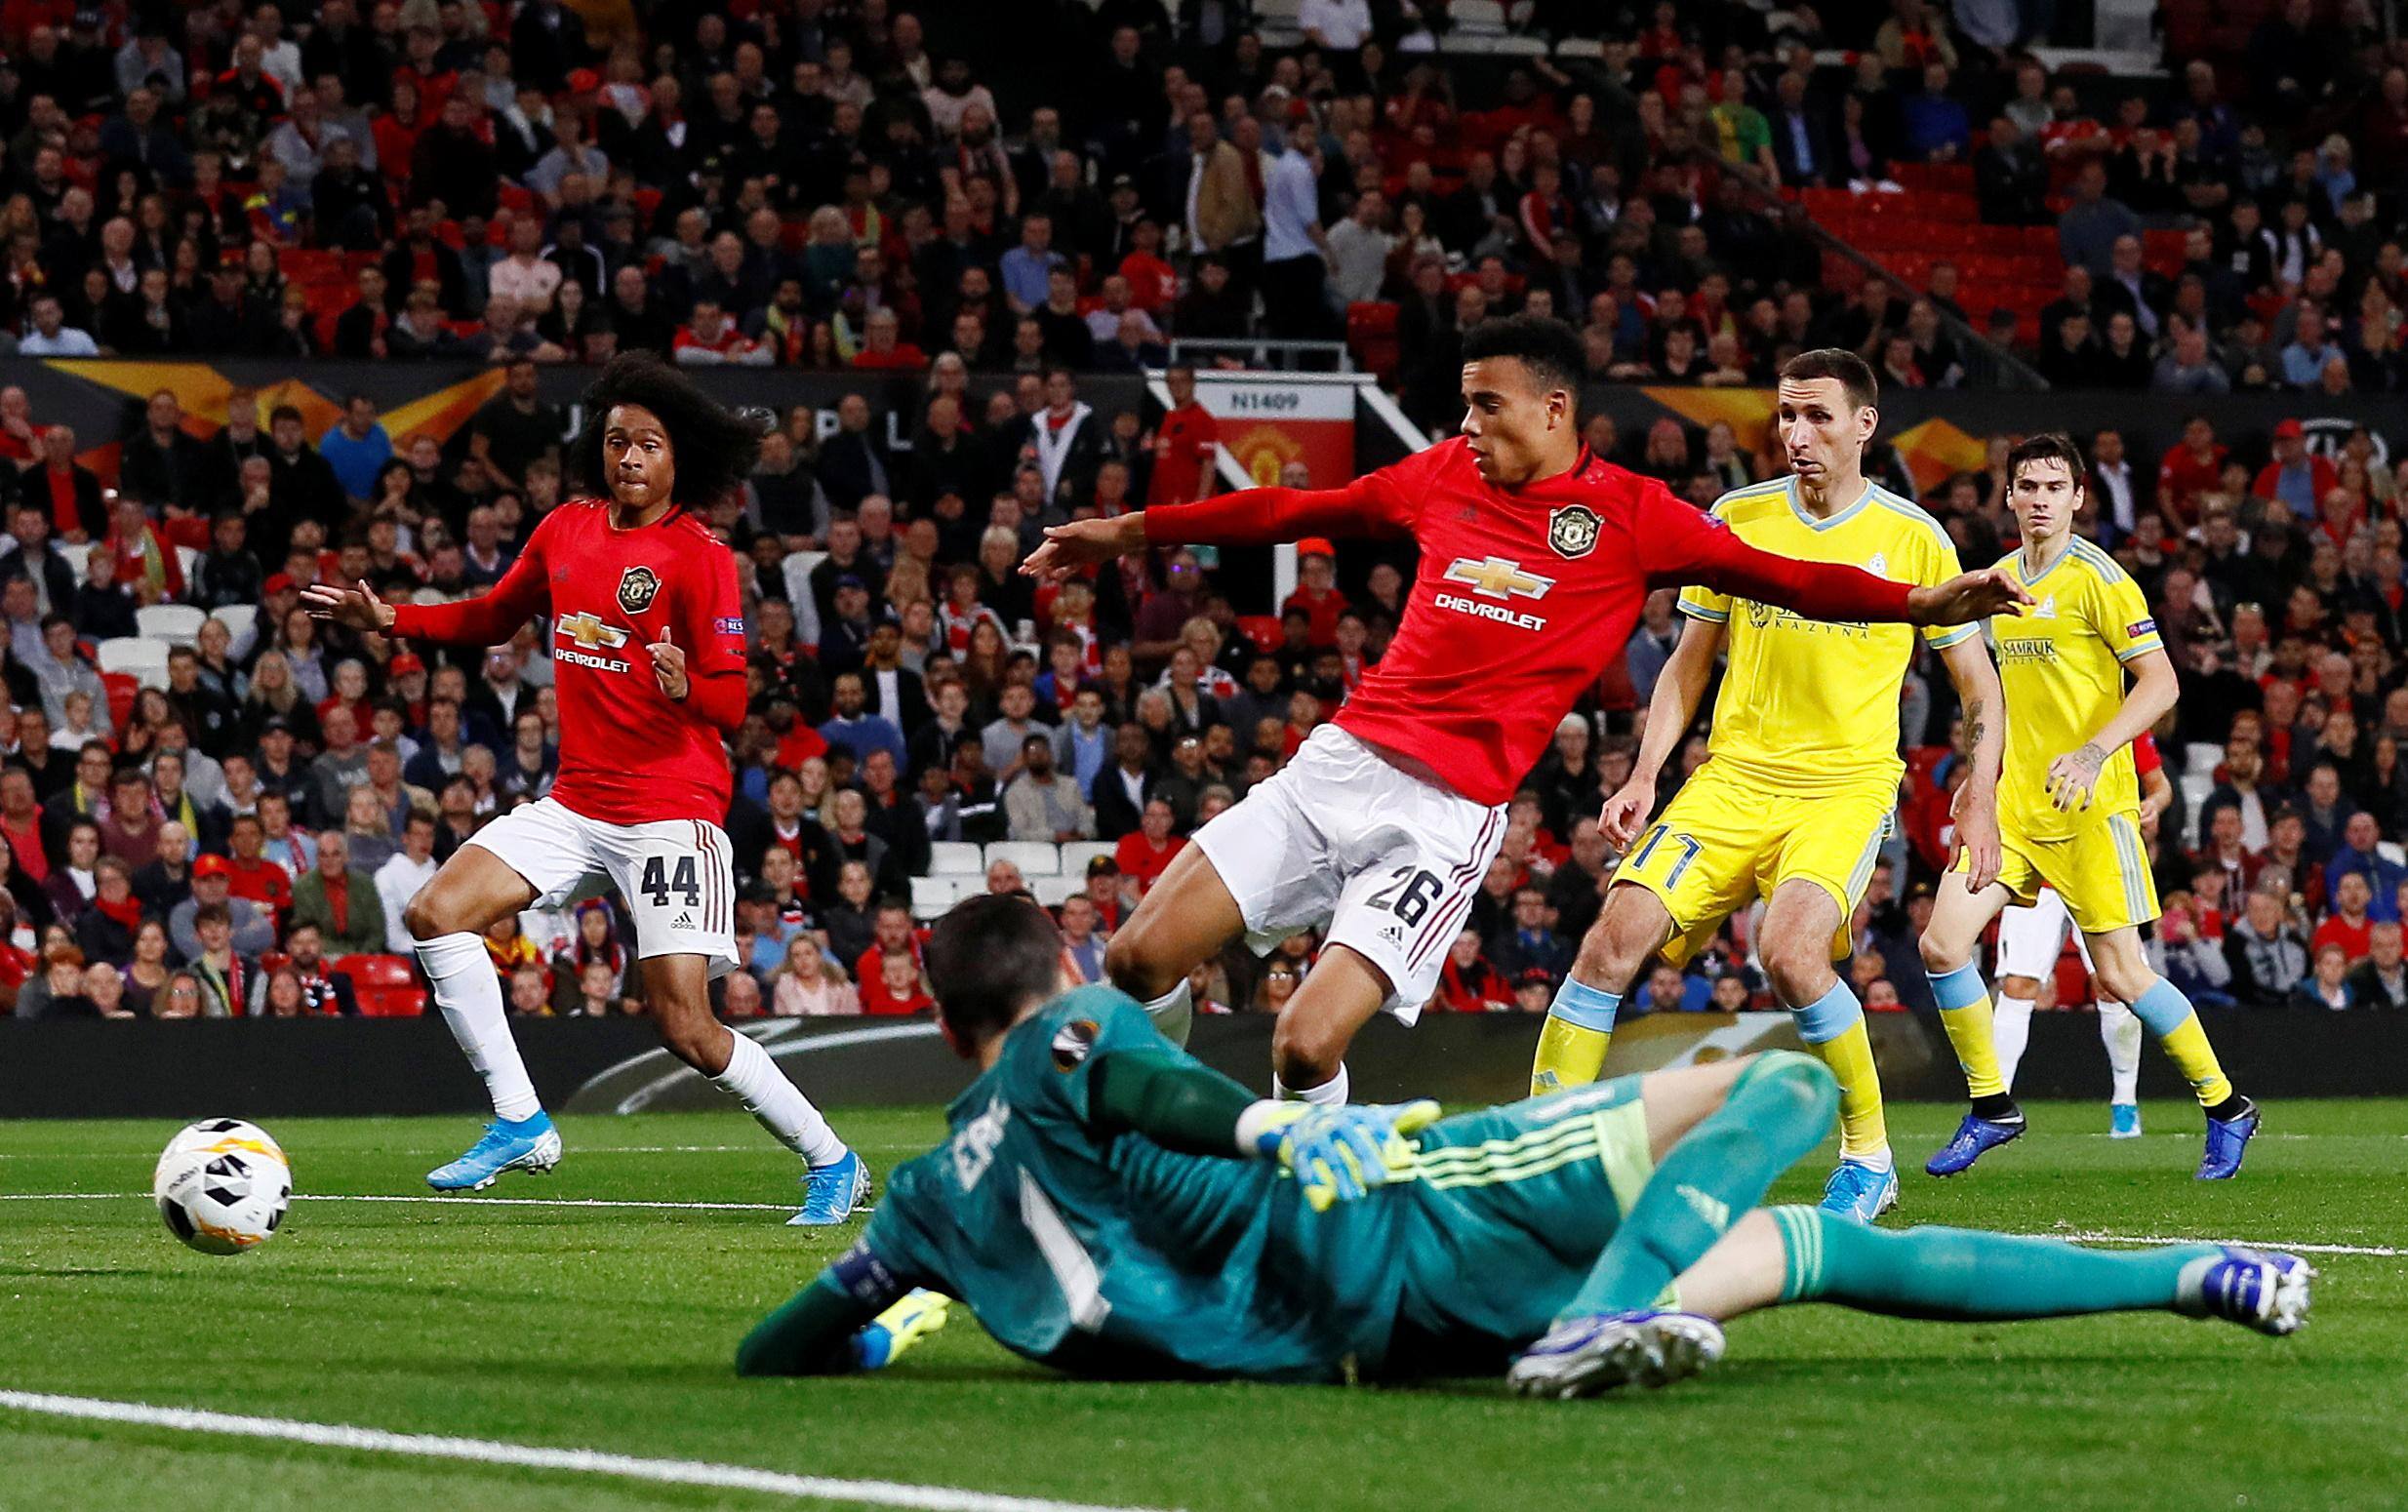 Greenwood grabs first goal for Man United in 1-0 win over Astana